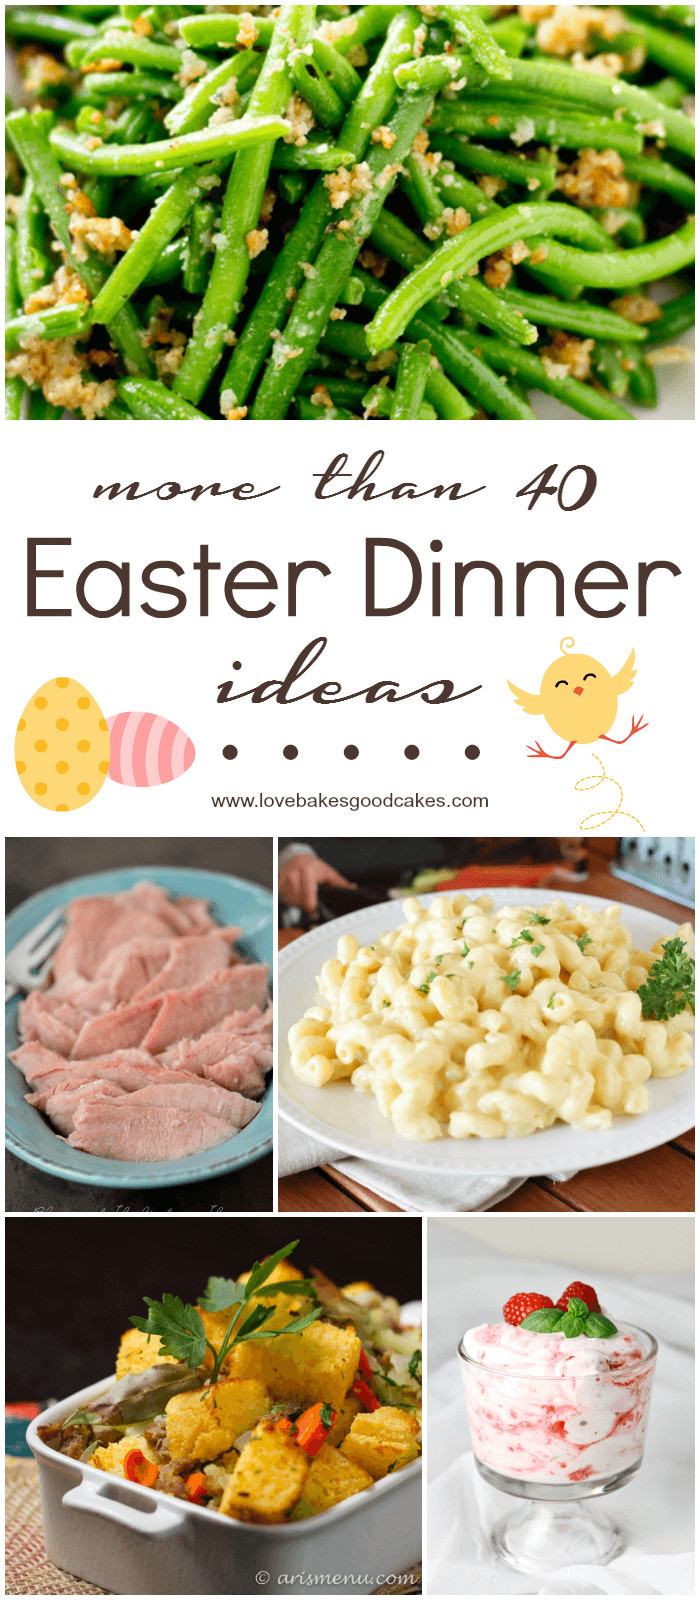 Easter Dinner Catering  More than 40 Easter Dinner Ideas